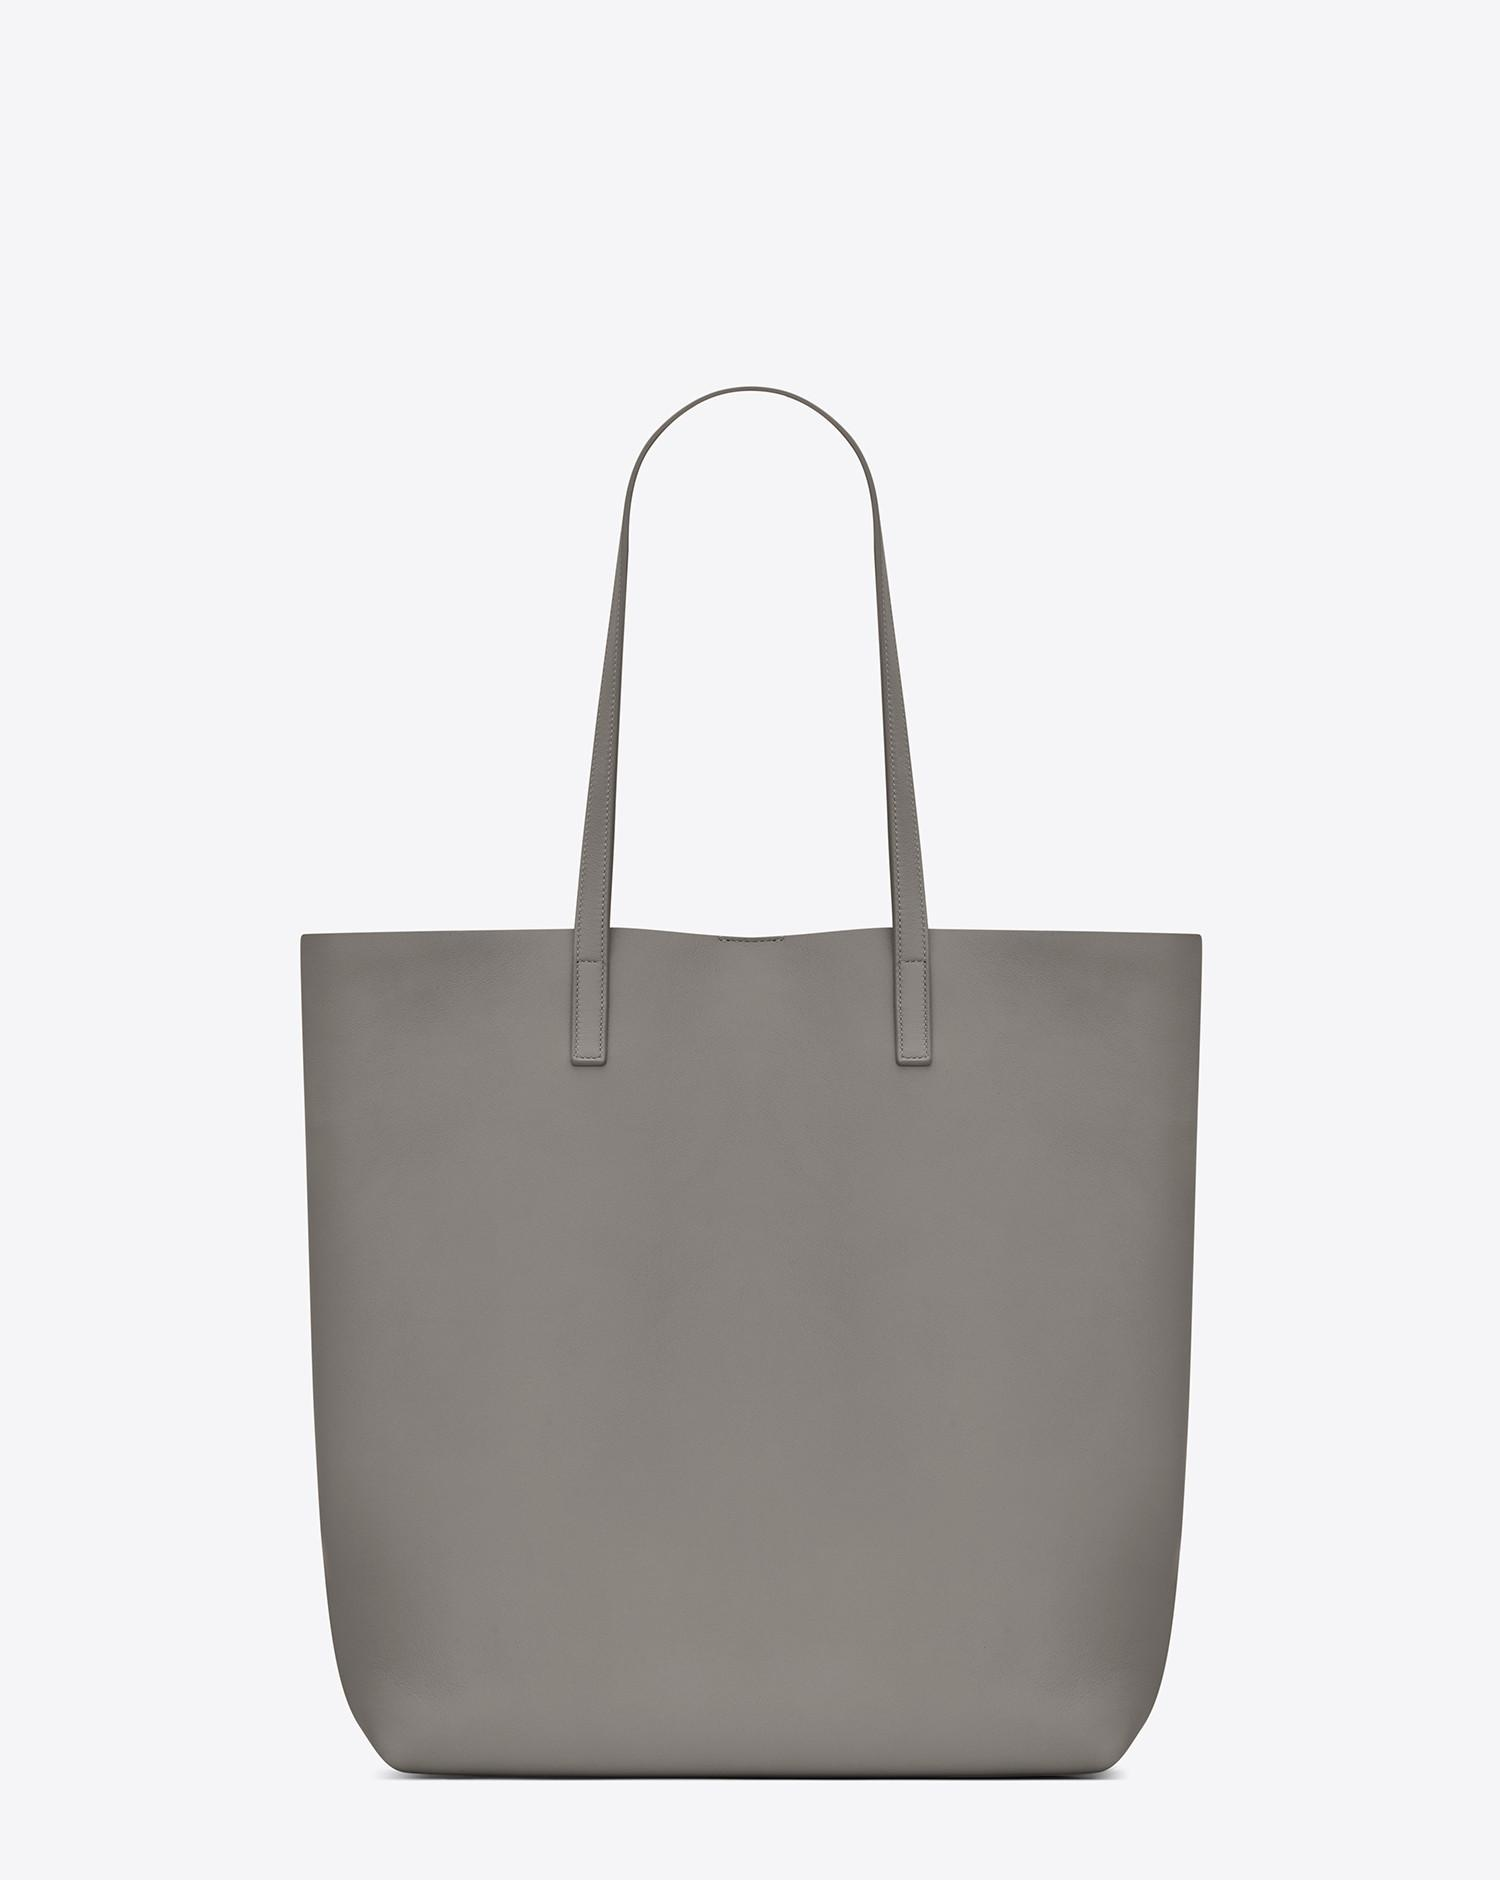 99f885b5335f Saint Laurent Medium Shopping Tote Bag In Pearl Grey Leather in Gray - Lyst